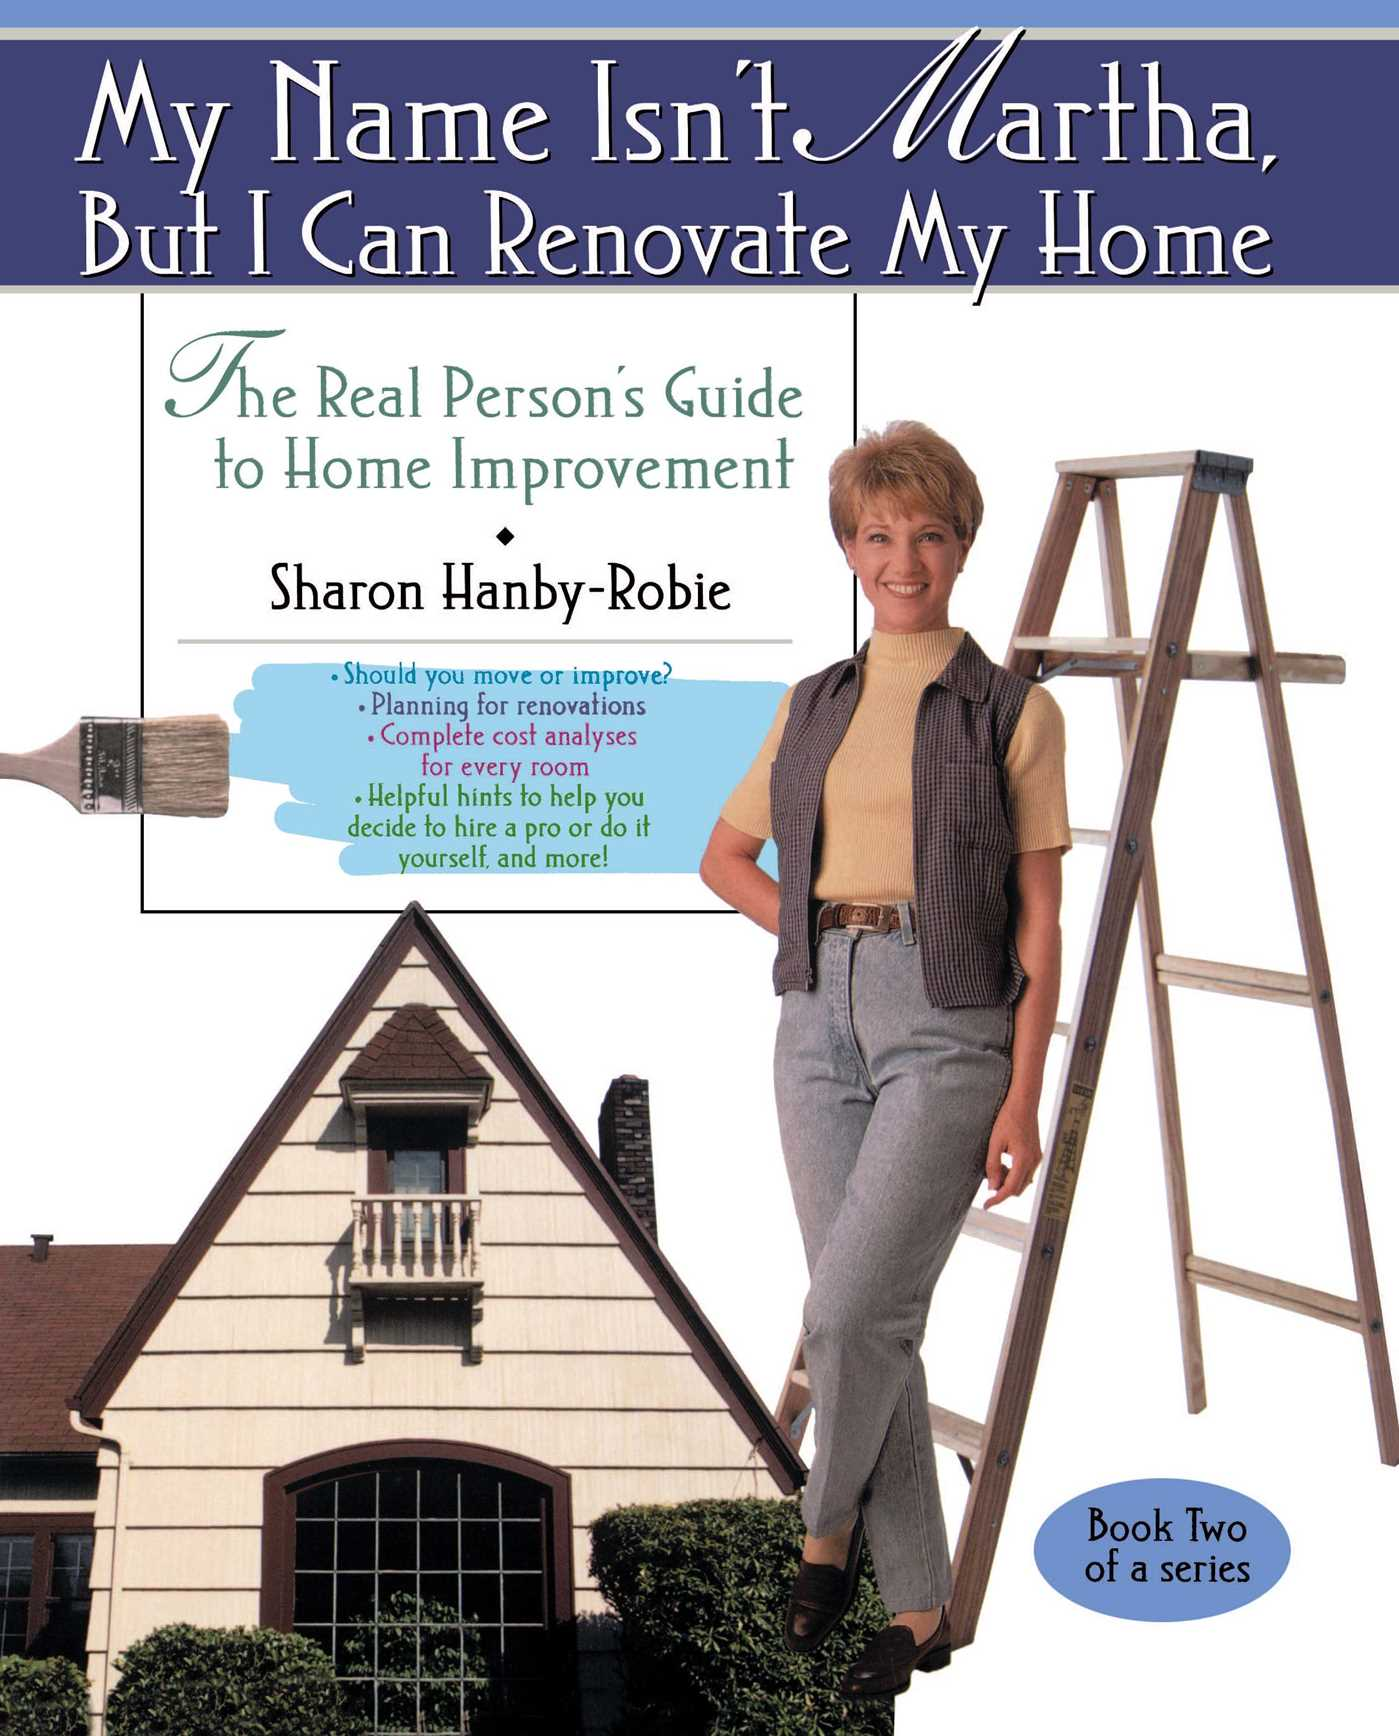 My-name-isnt-martha-but-i-can-renovate-my-home-9780671015435_hr